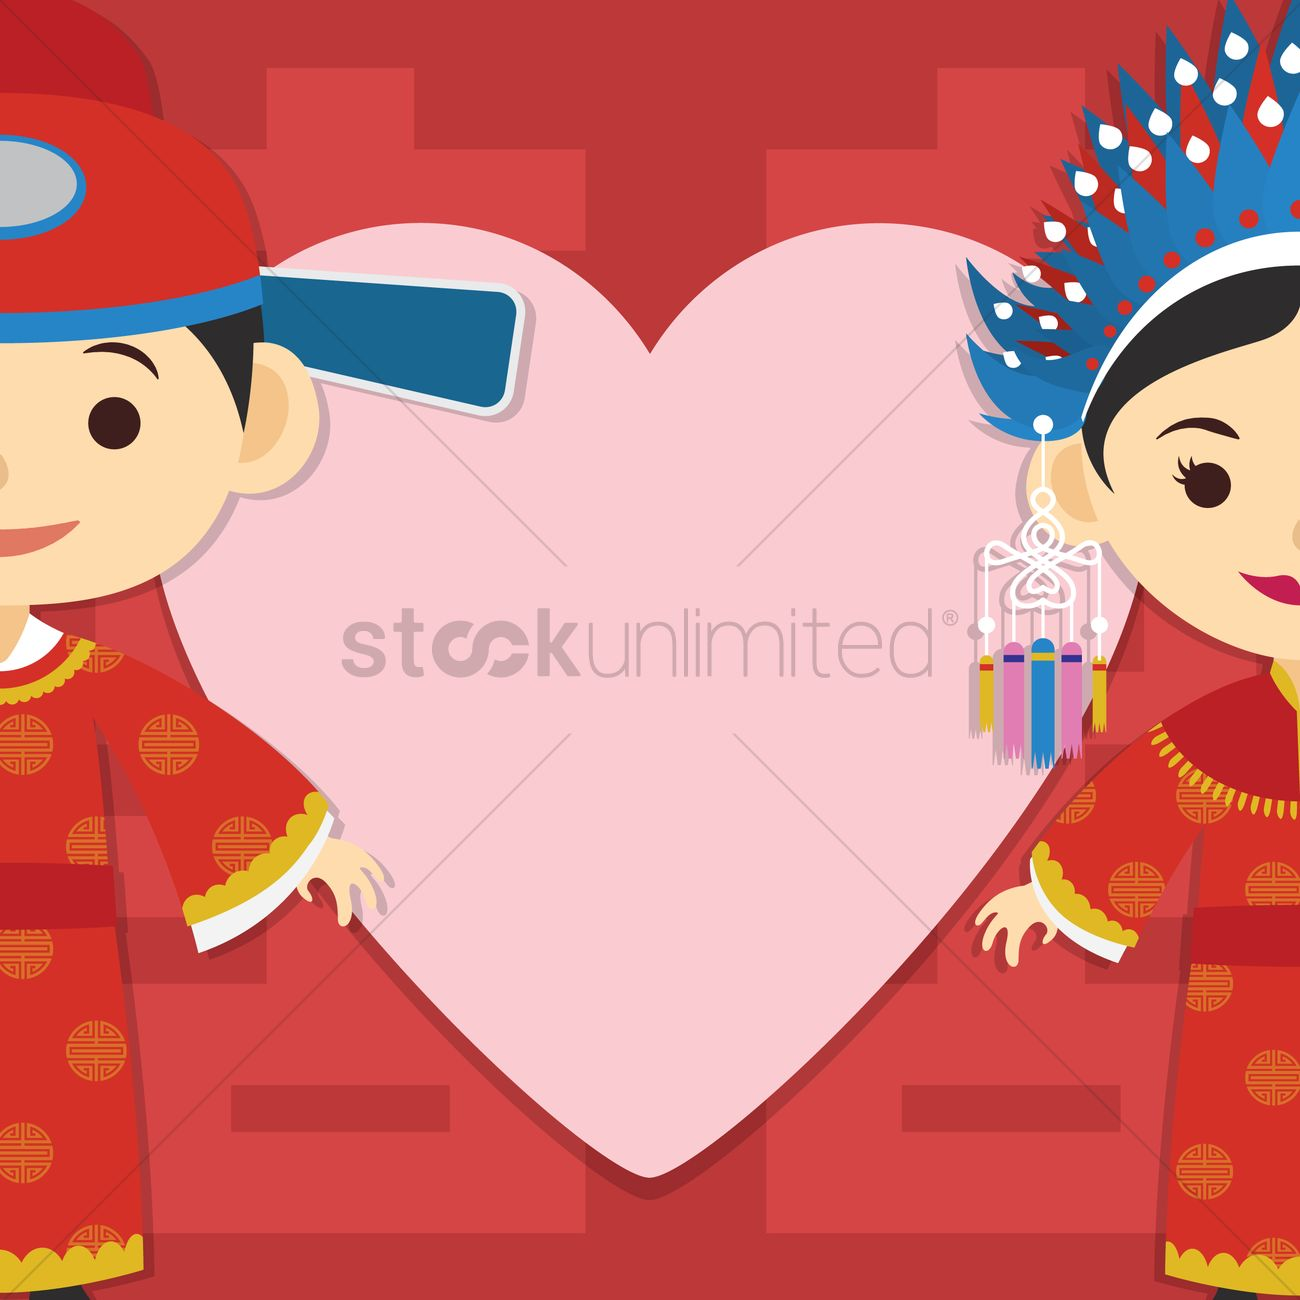 Chinese wedding invitation card design Vector Image - 1244209 ...